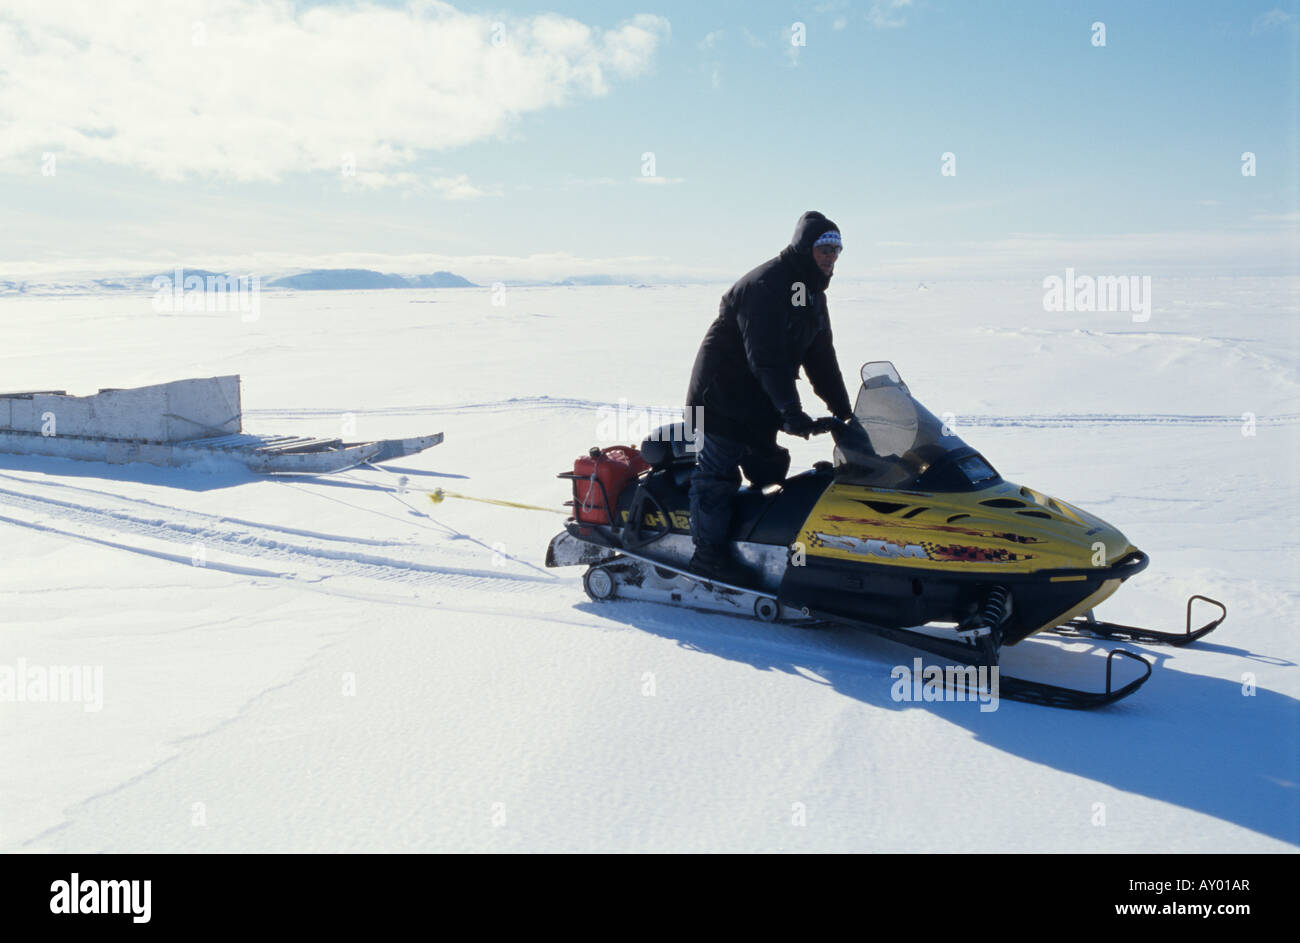 Inuit traveling on a snowmobile, Arctic Canada - Stock Image